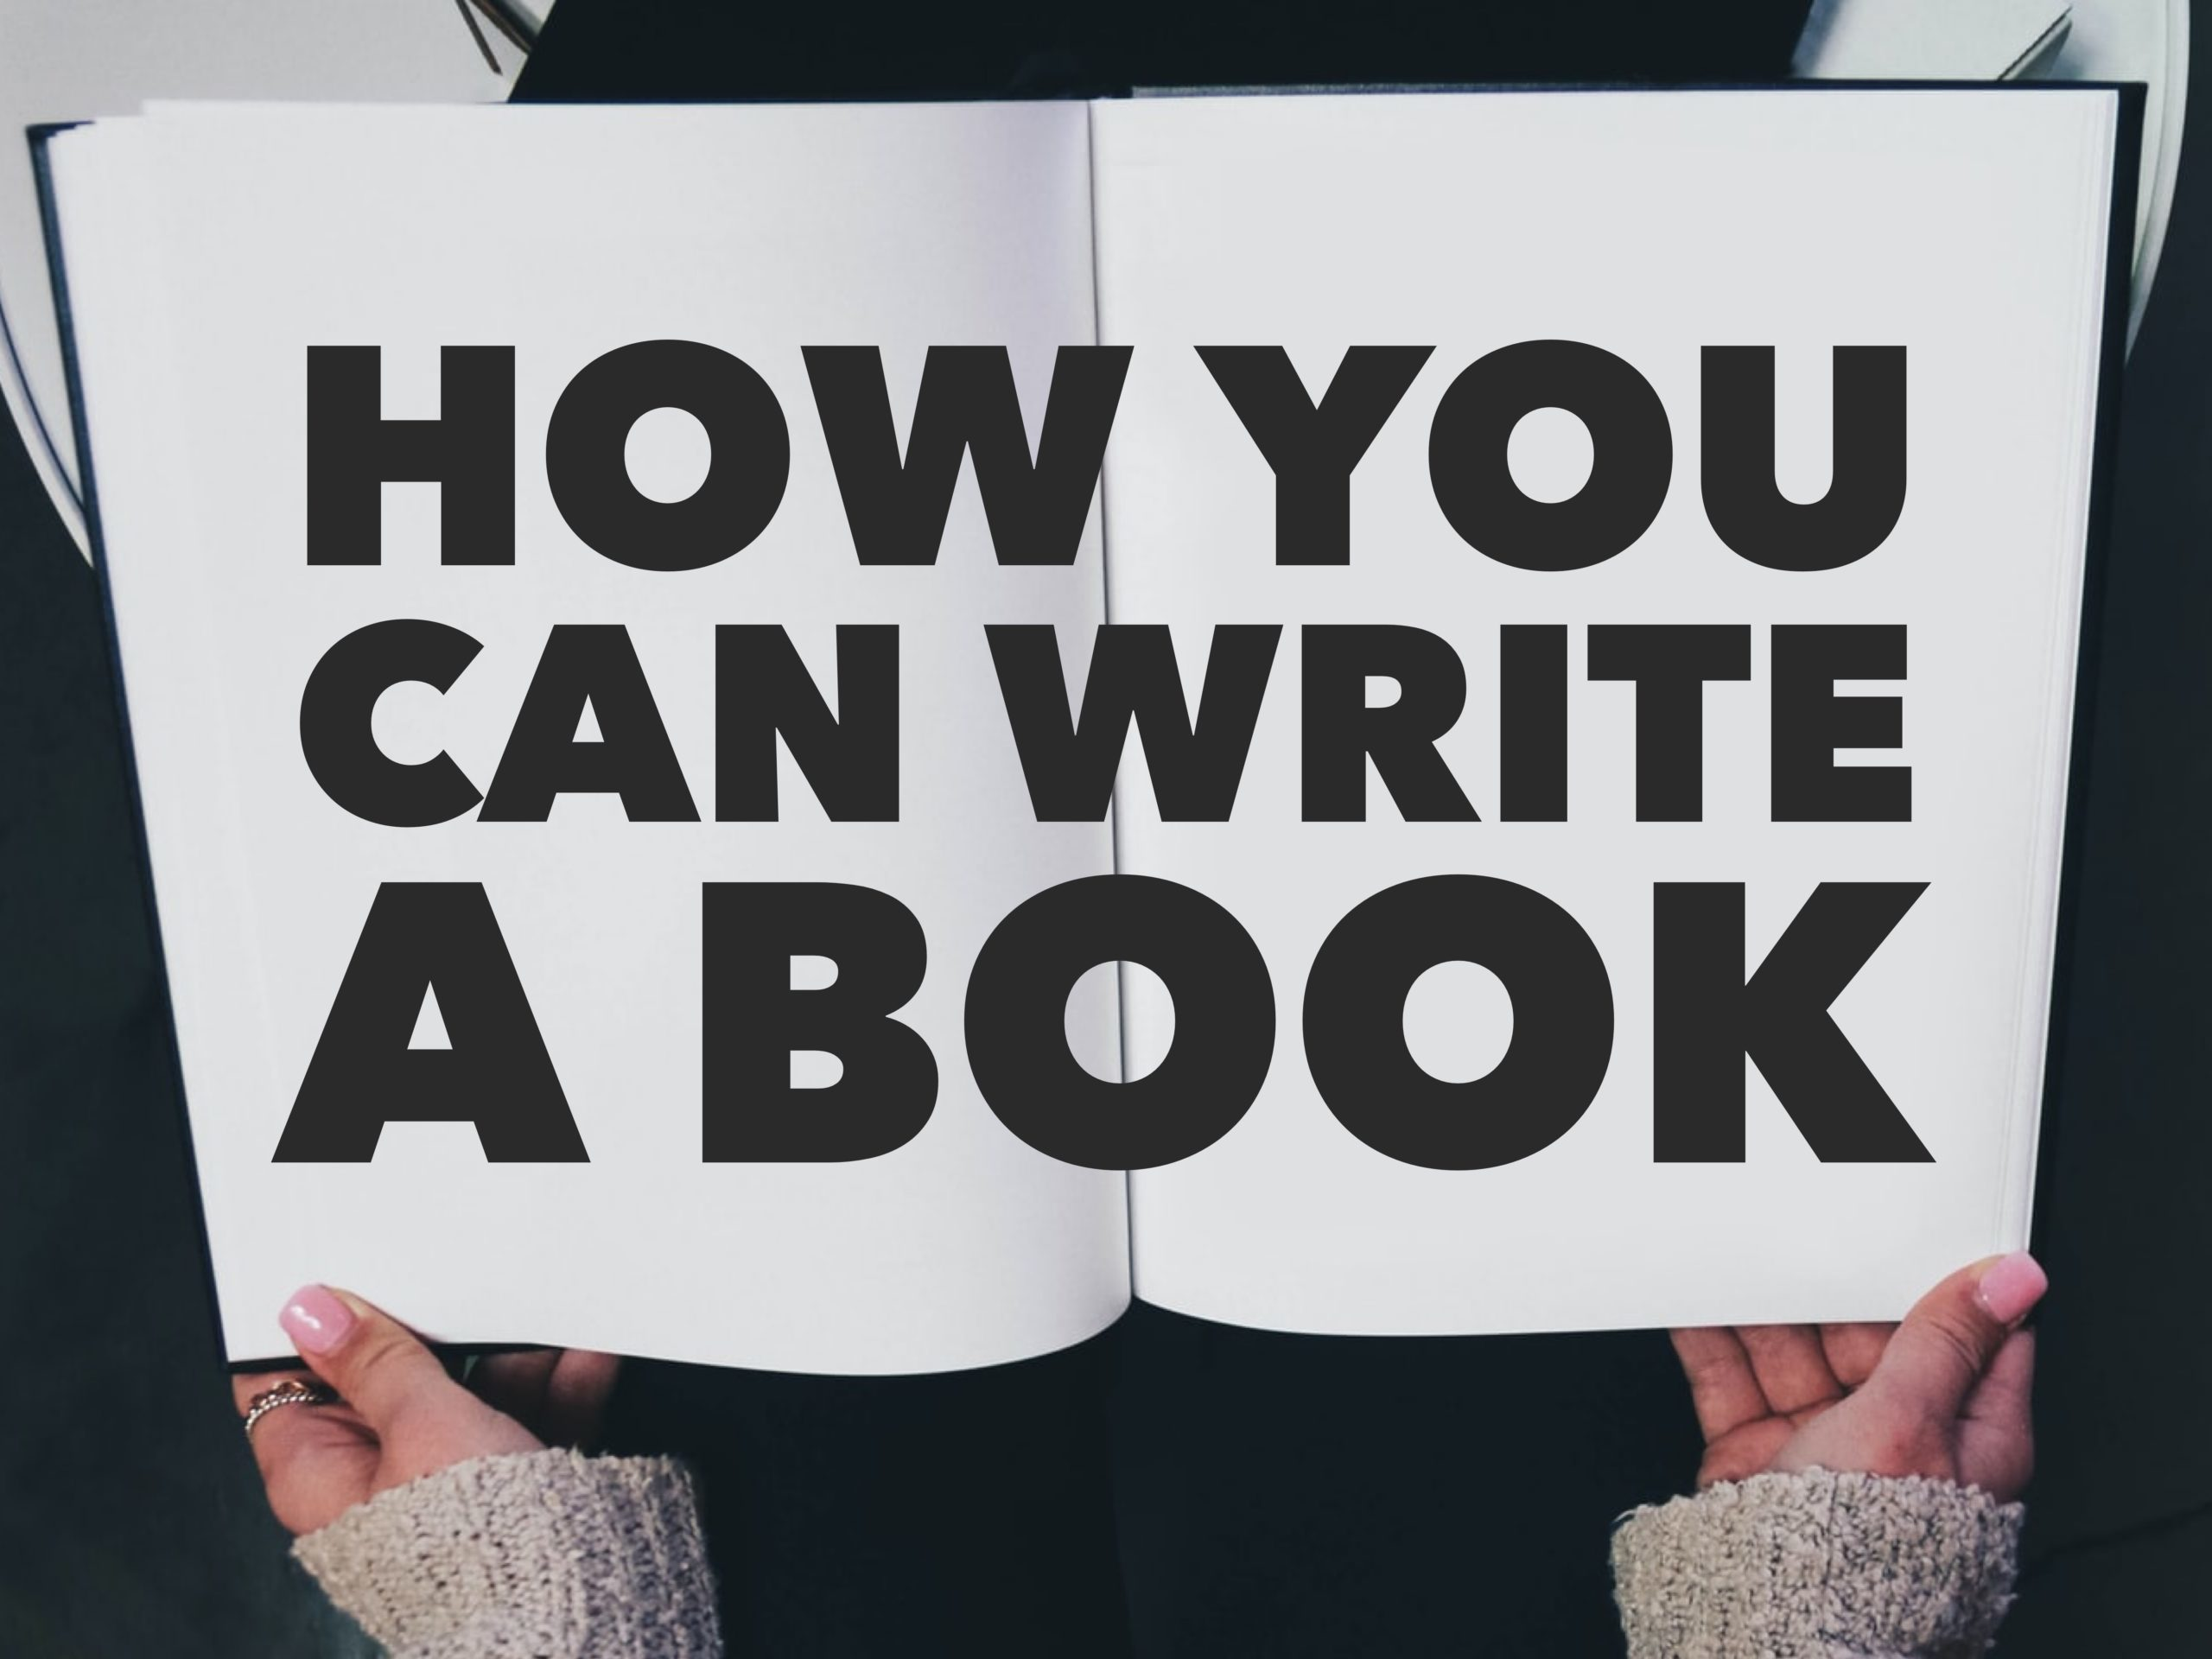 How You Can Write A Book.